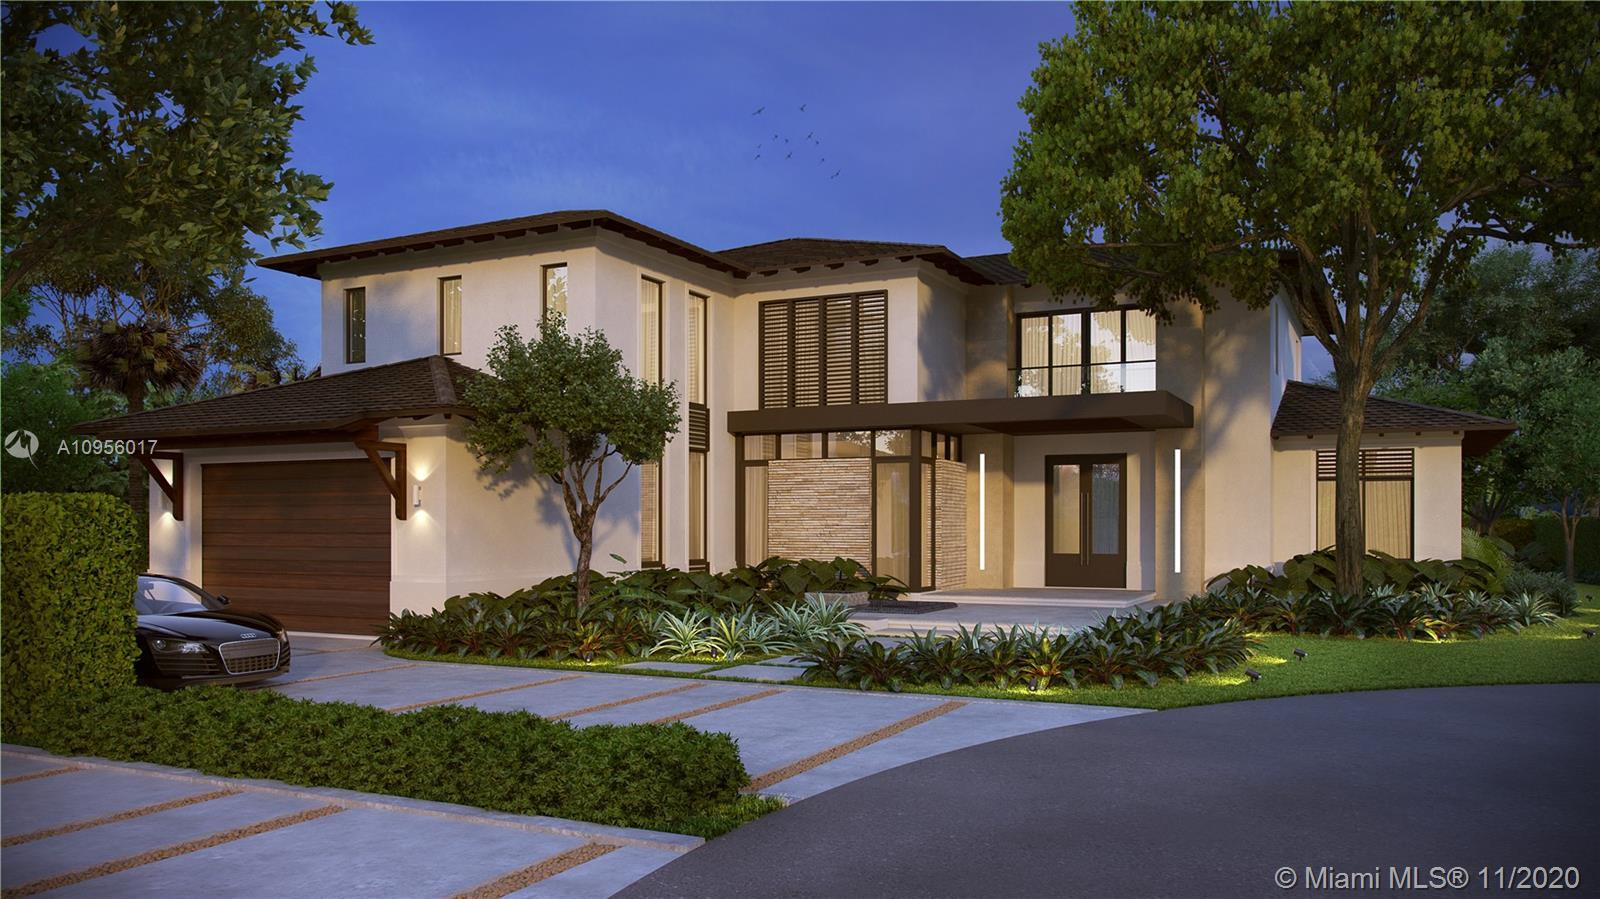 Live in a new level of modern luxury living. This homes sits on the cul-de-sac  on a quiet private r